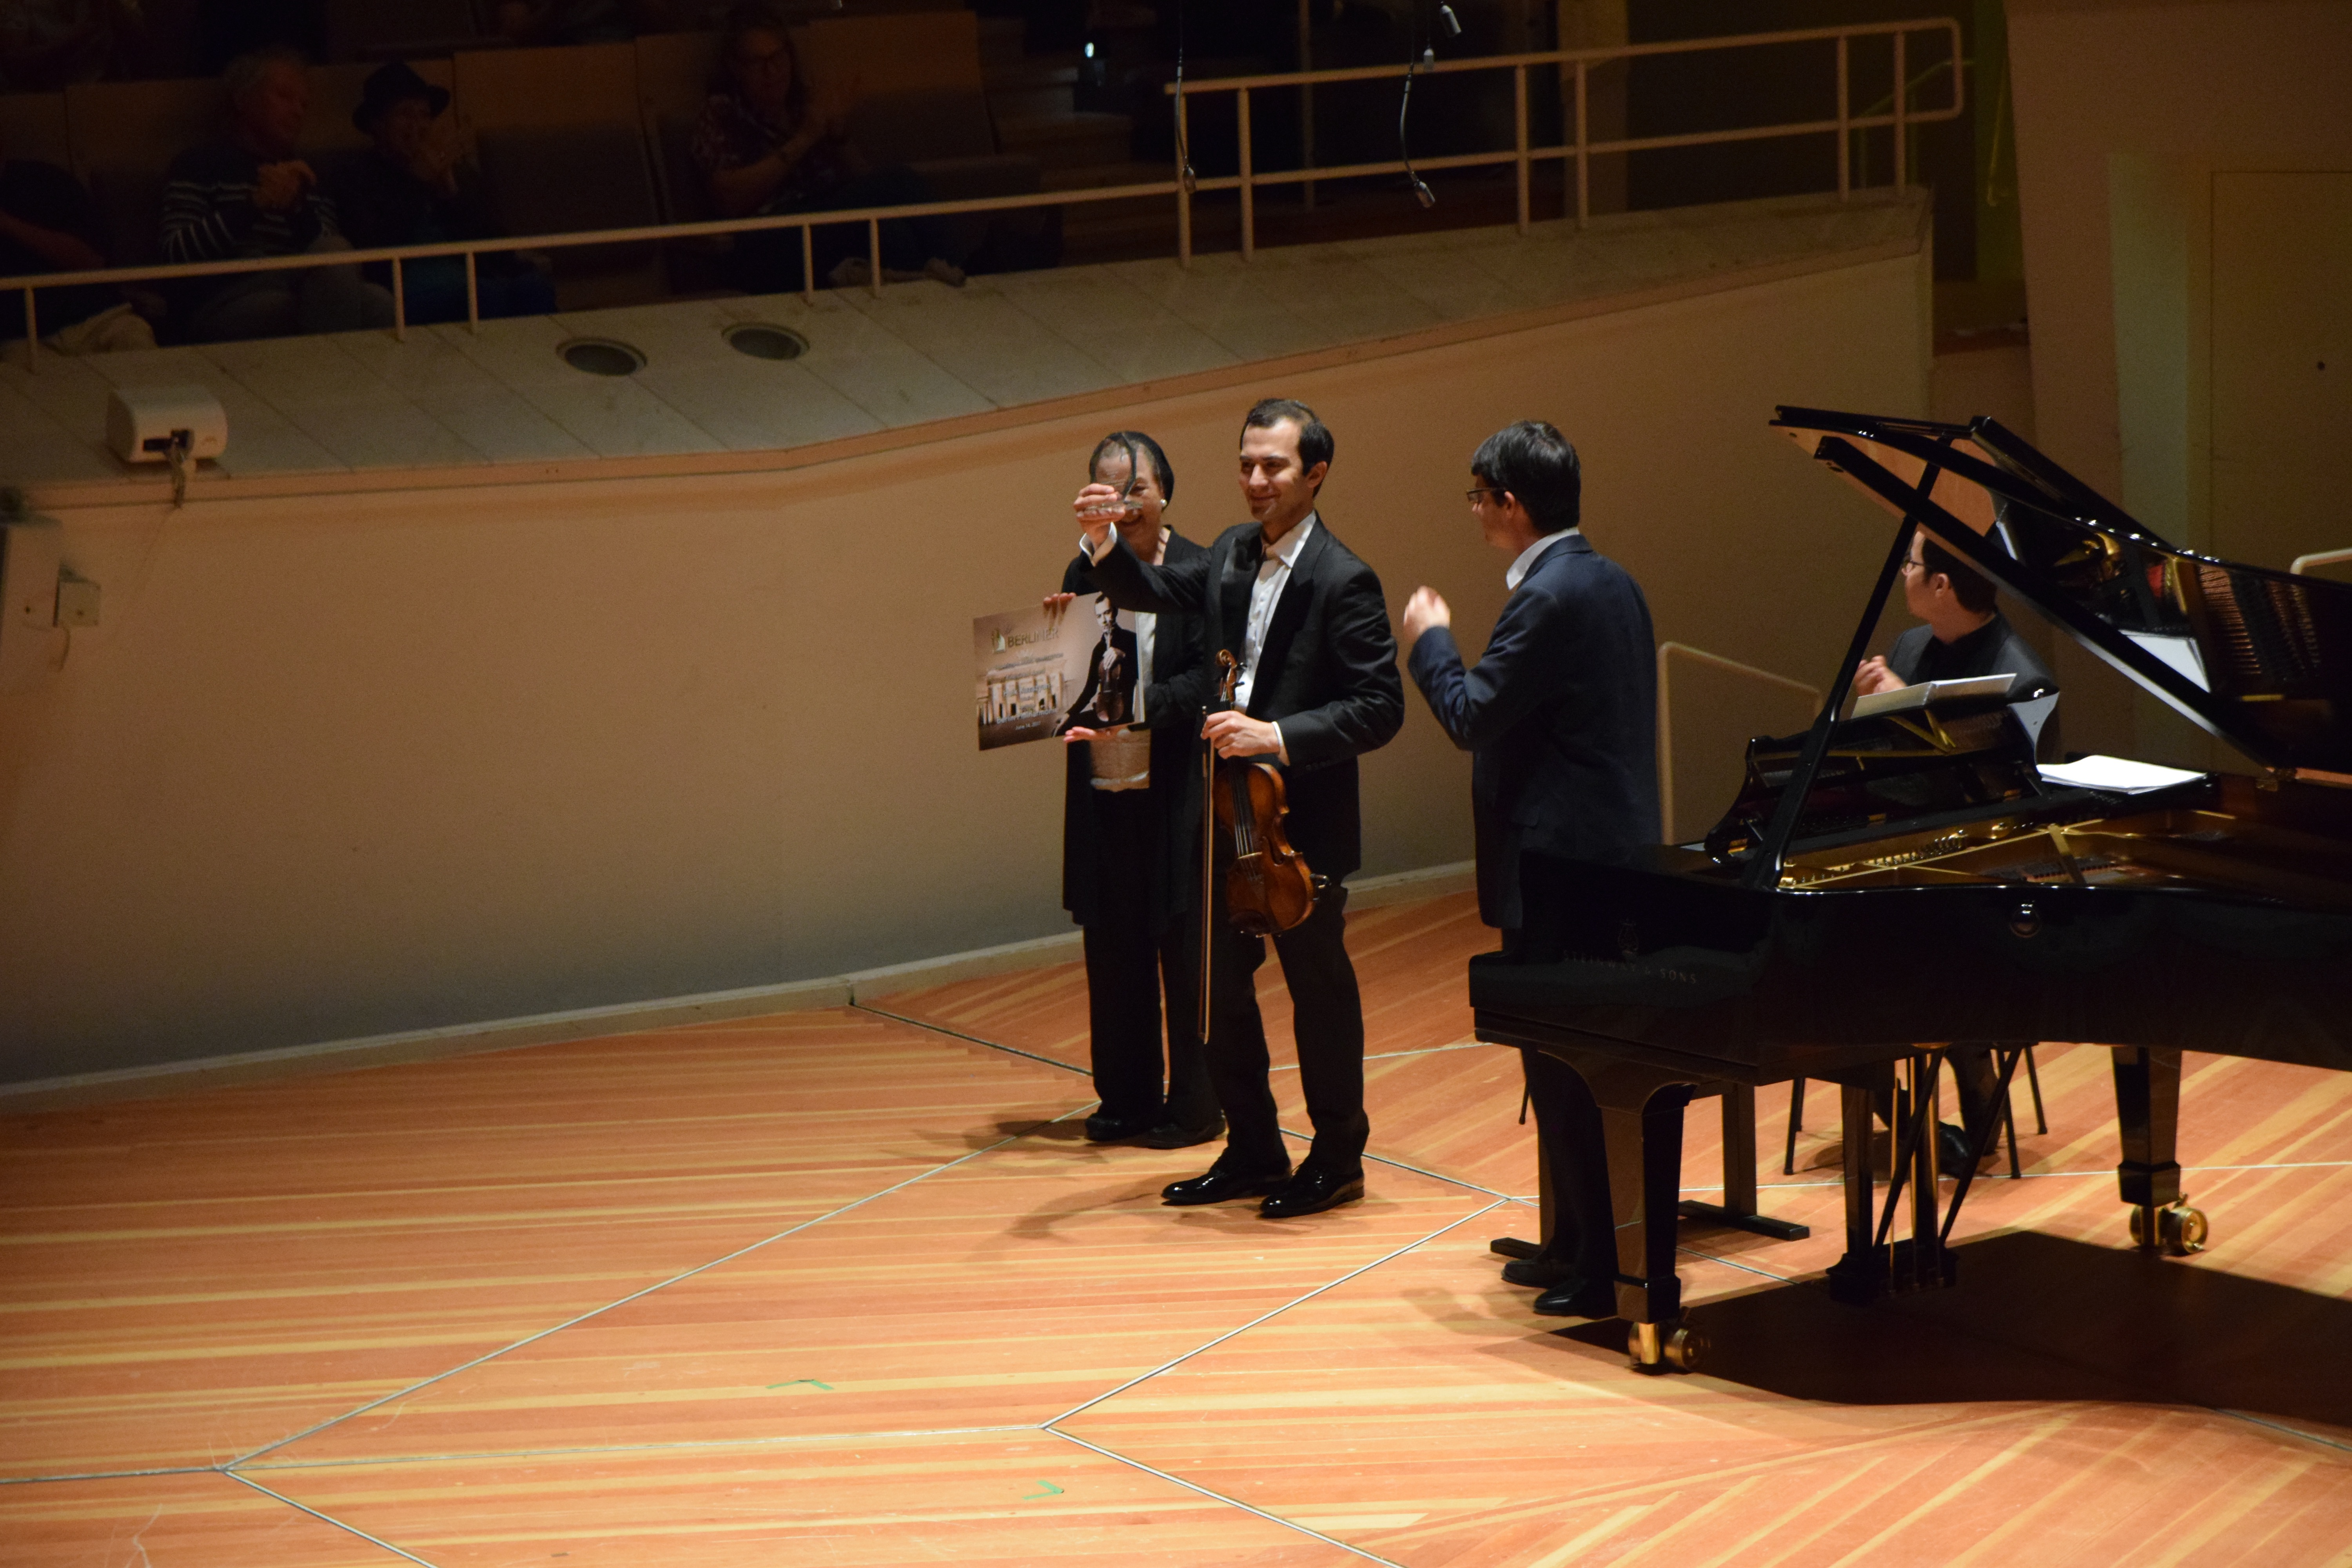 berliner music competition 3